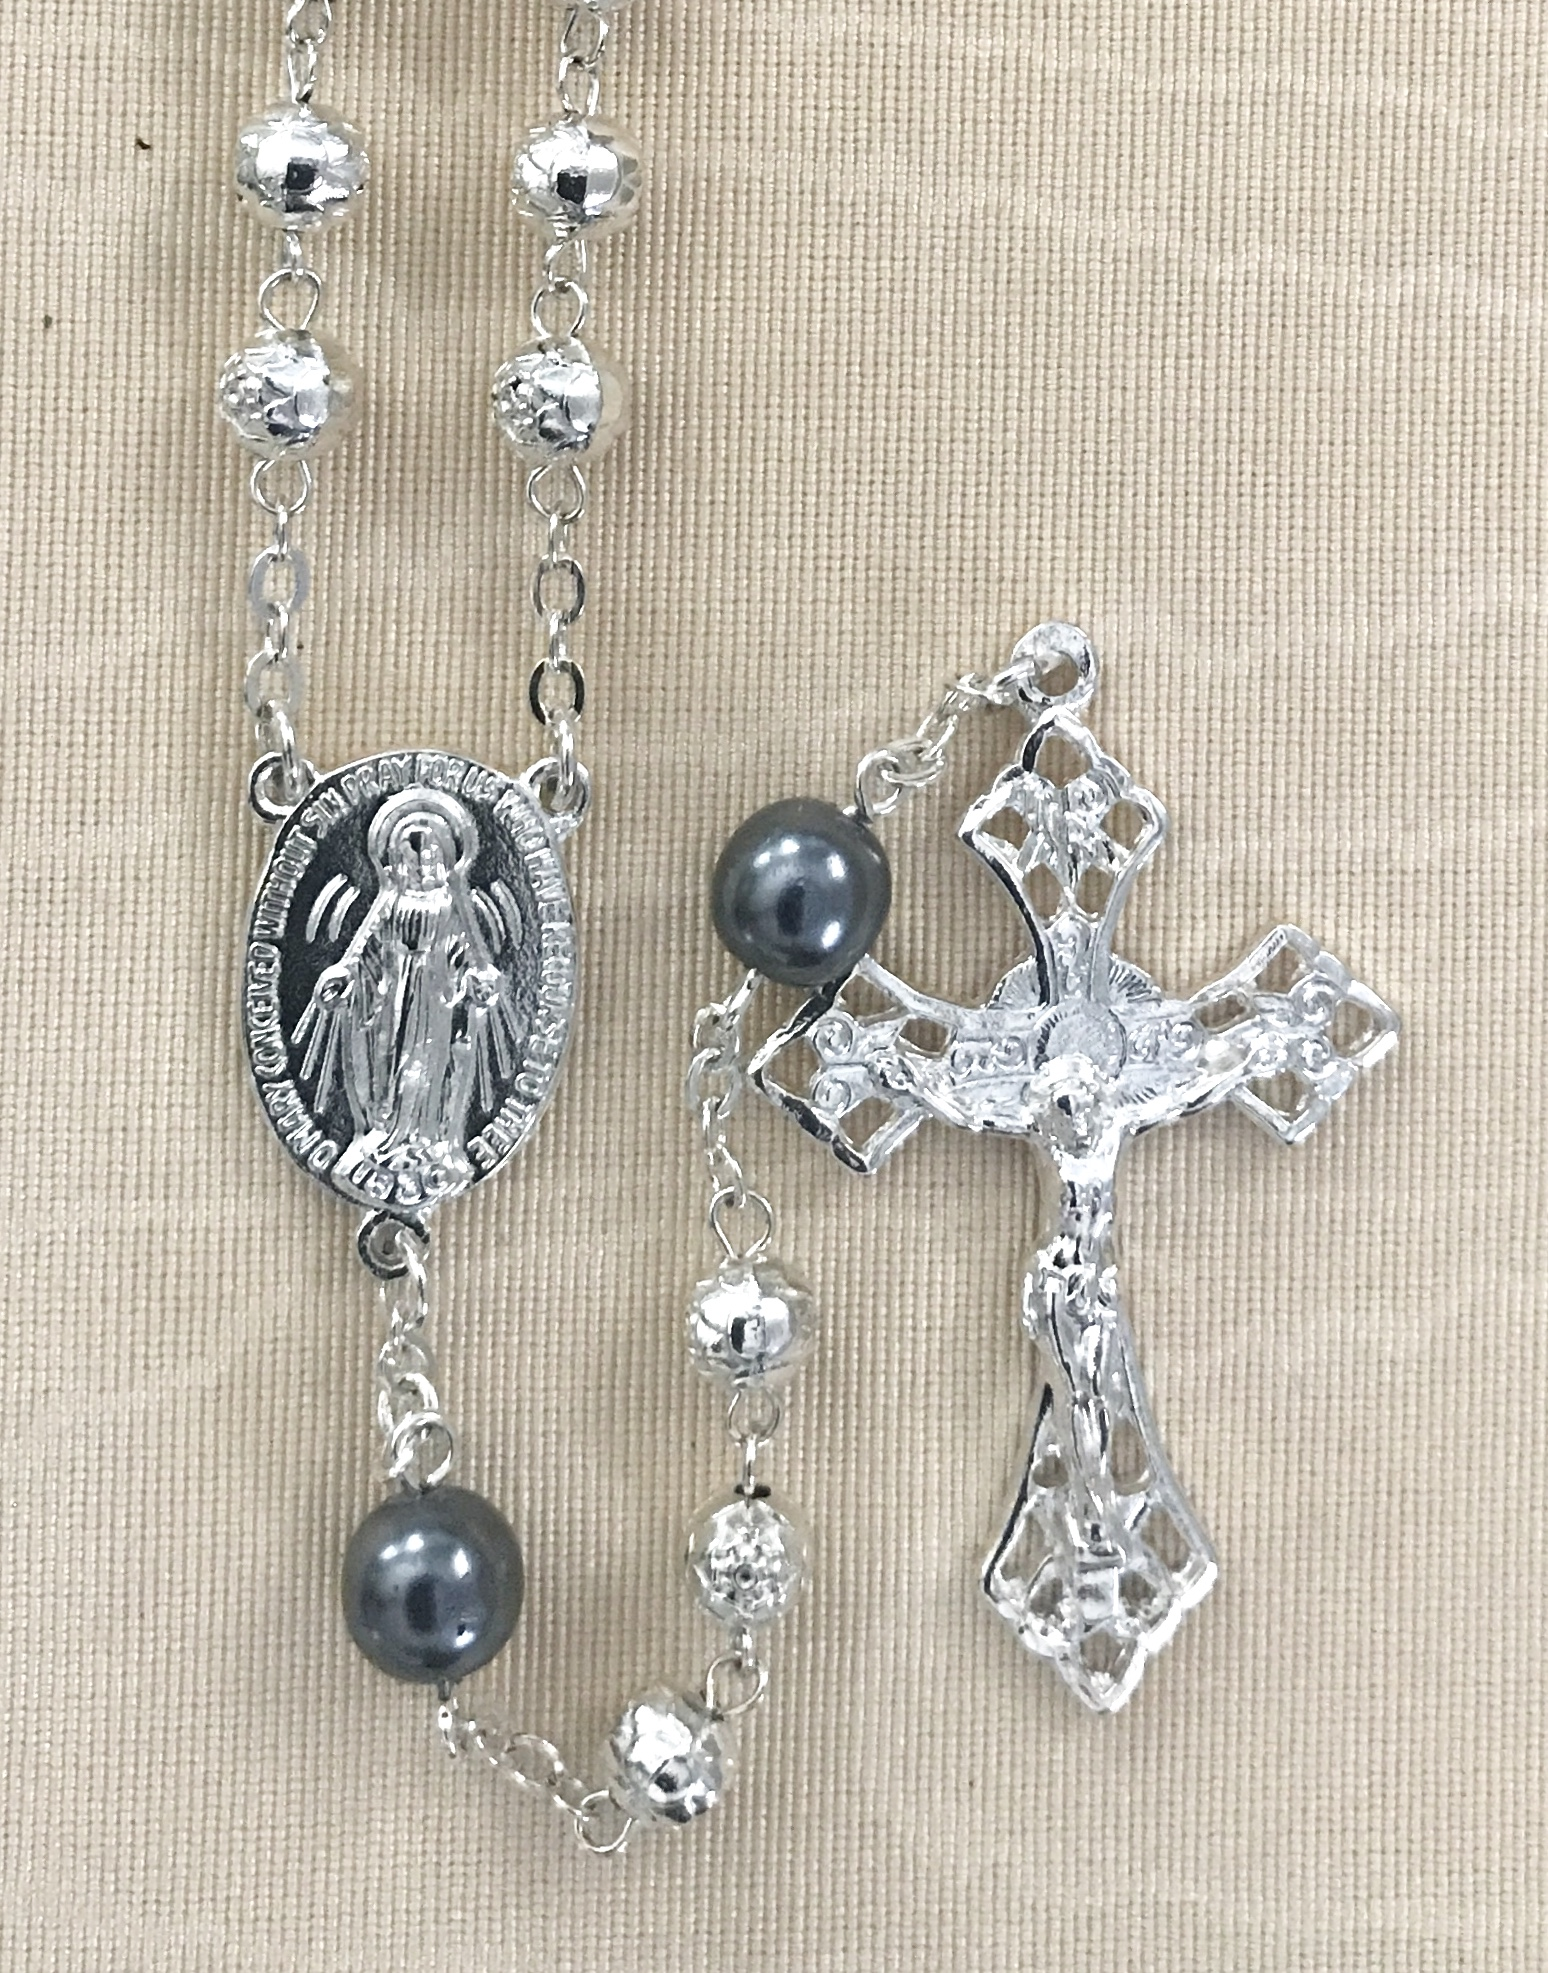 7MM ROSEBUD ROSARY WITH SILVER PEARL OUR FATHER BEADS STERLING SILVER PLATED ROSARY GIFT BOXED